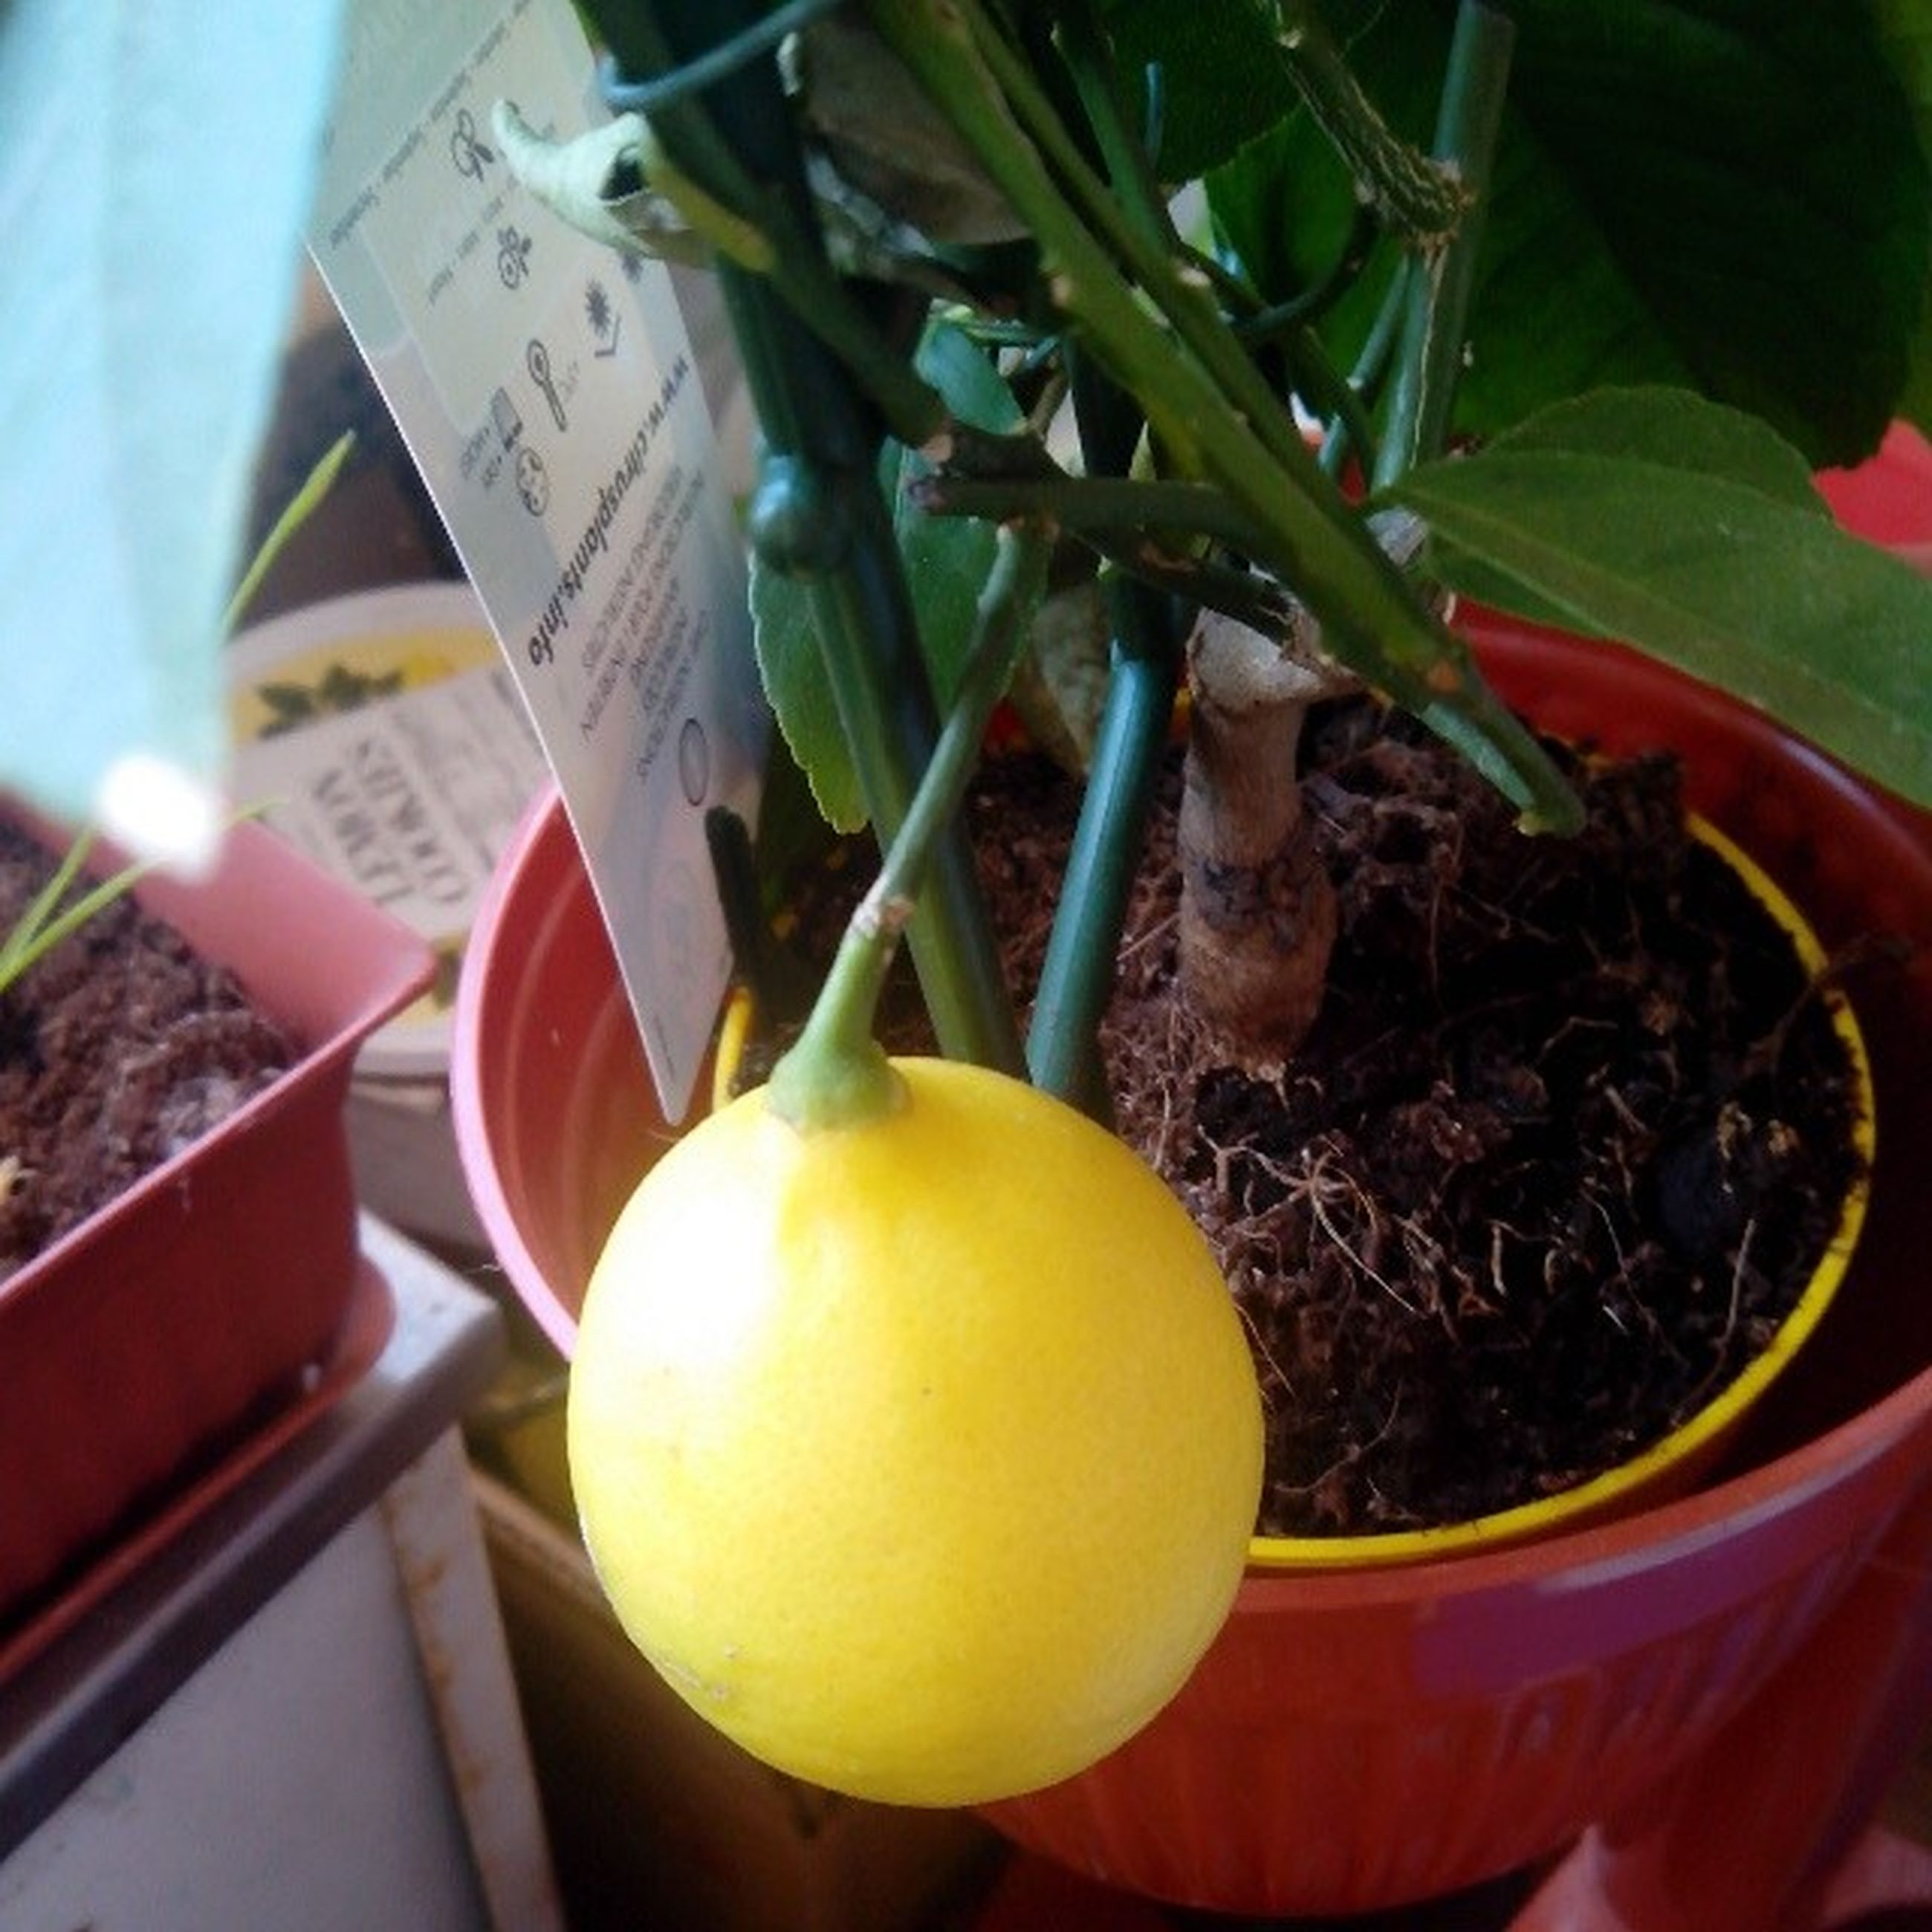 food and drink, fruit, yellow, food, healthy eating, tree, freshness, close-up, hanging, text, growth, day, no people, leaf, focus on foreground, communication, outdoors, building exterior, still life, lemon